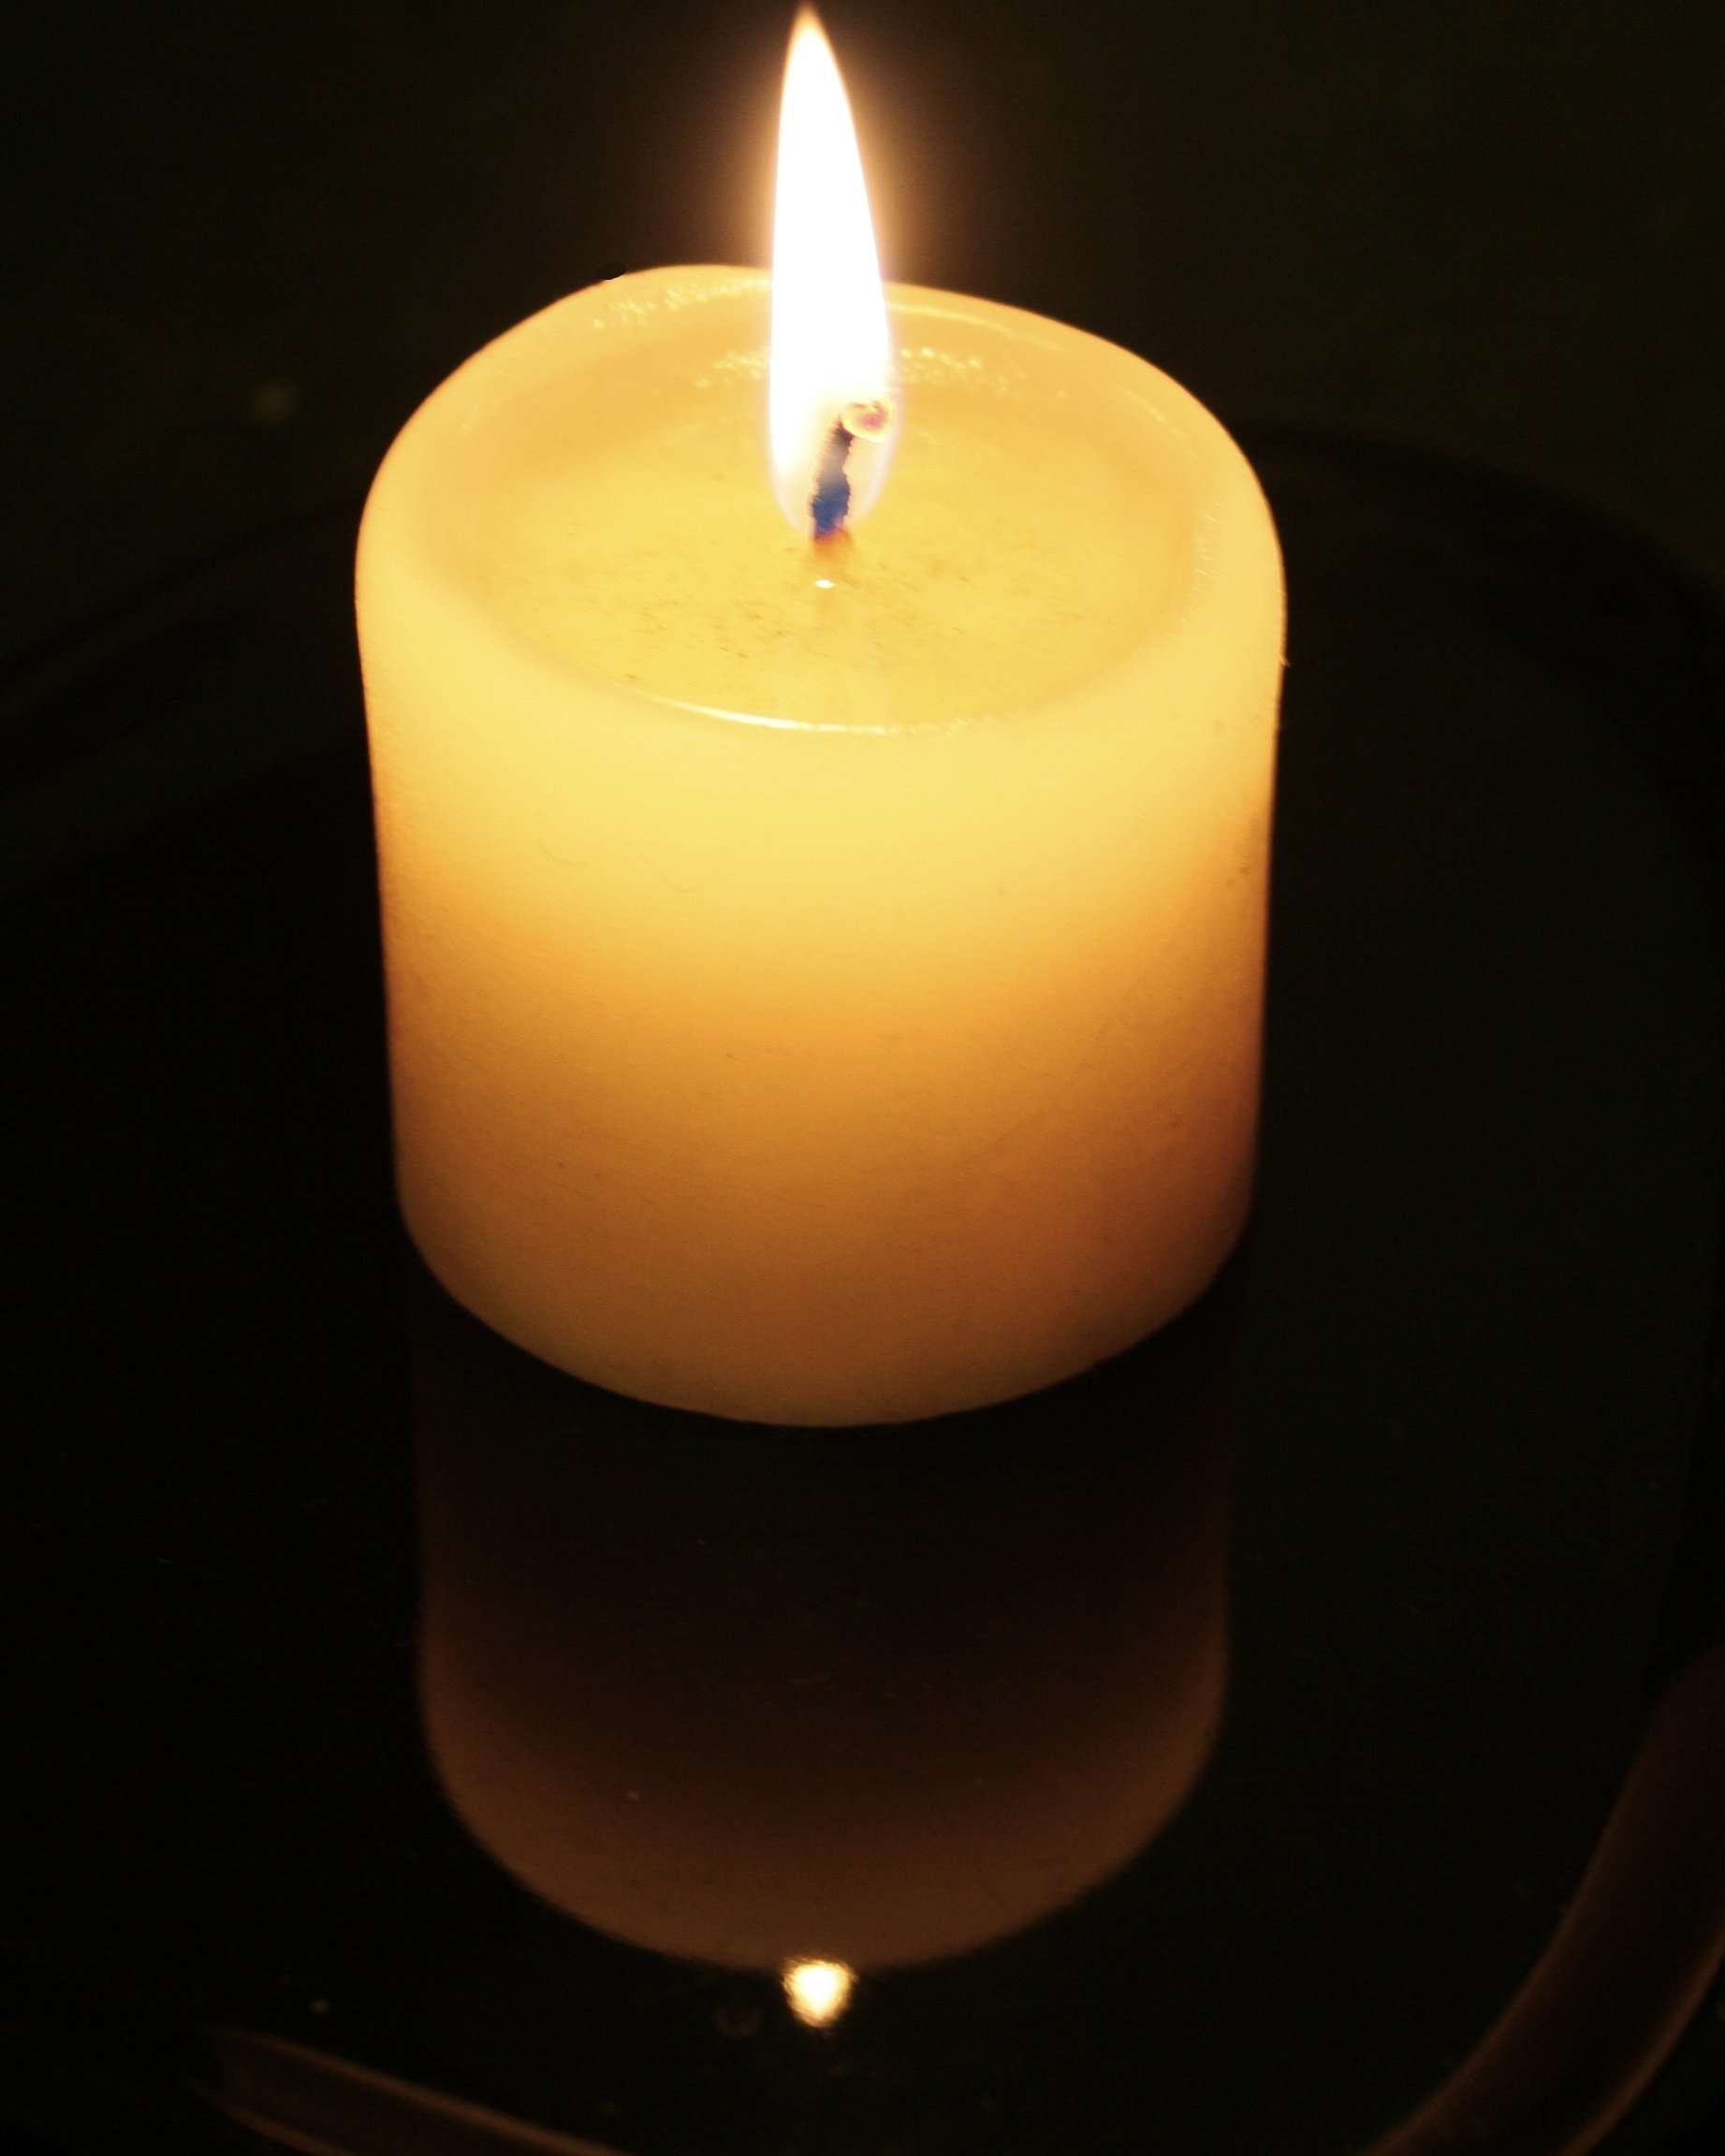 Candle-flame-and-reflection.jpg (1843×2304)